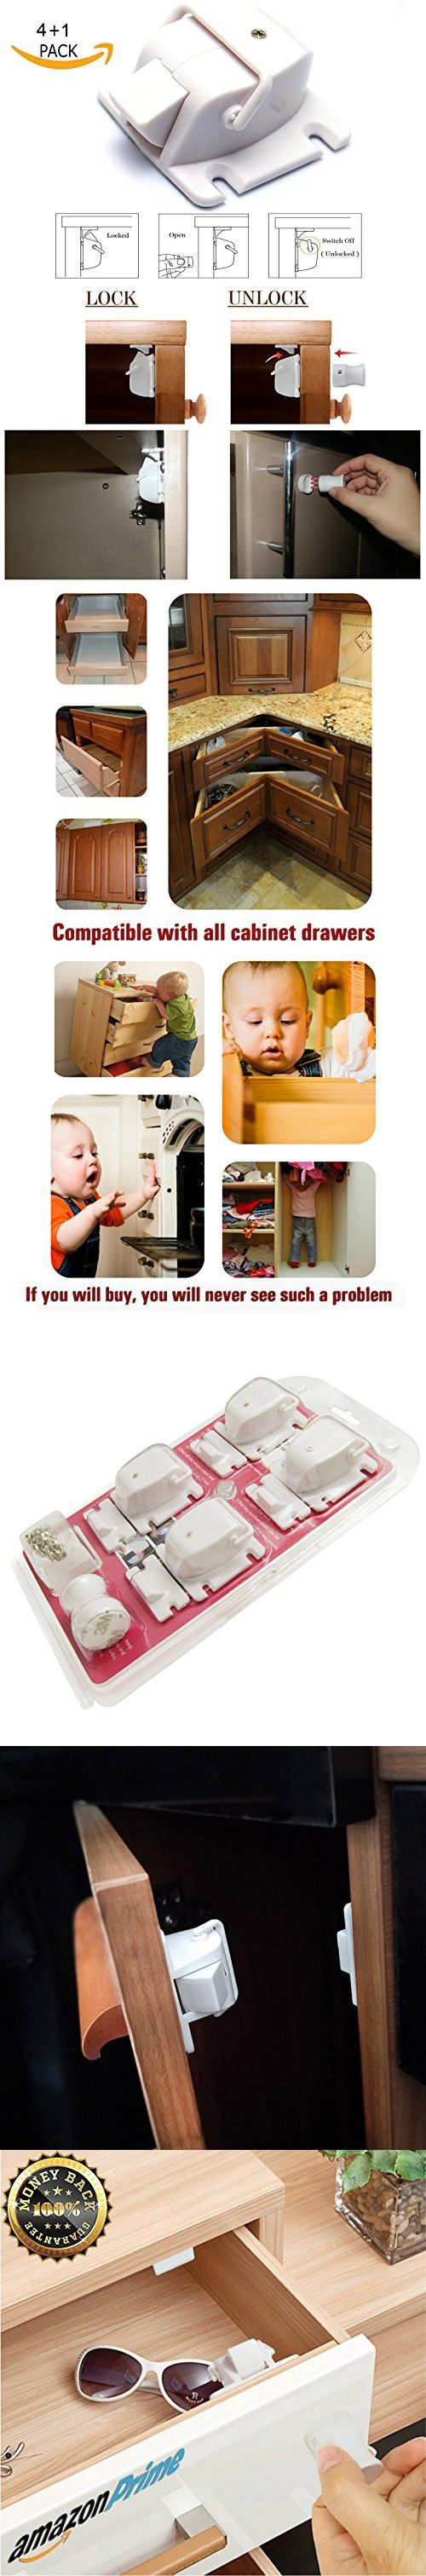 LifeHack.Baby Safety Magnetic locks (4 Locks+1 Key) for Cabinets Drawers.Easy Installation. No Tools Or Screws Needed